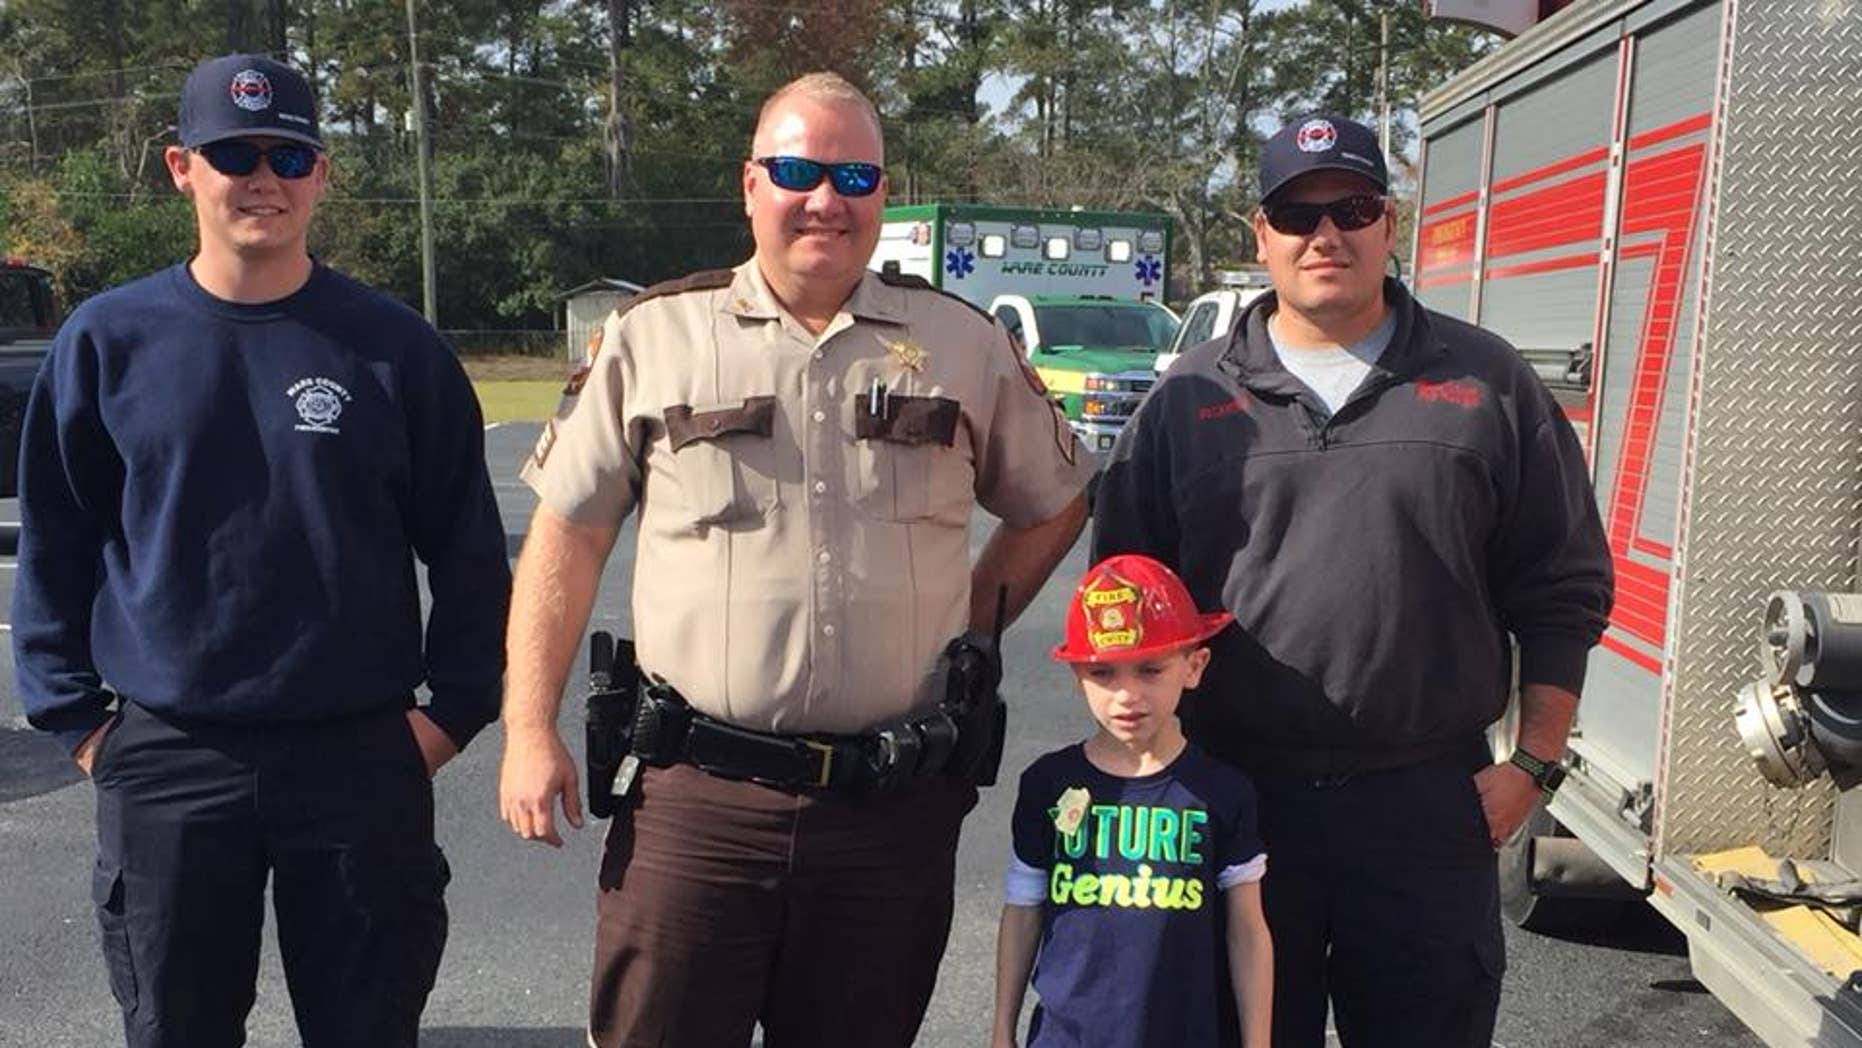 The Ware County Emergency Department surprised Holden Bridges for his 7th birthday.